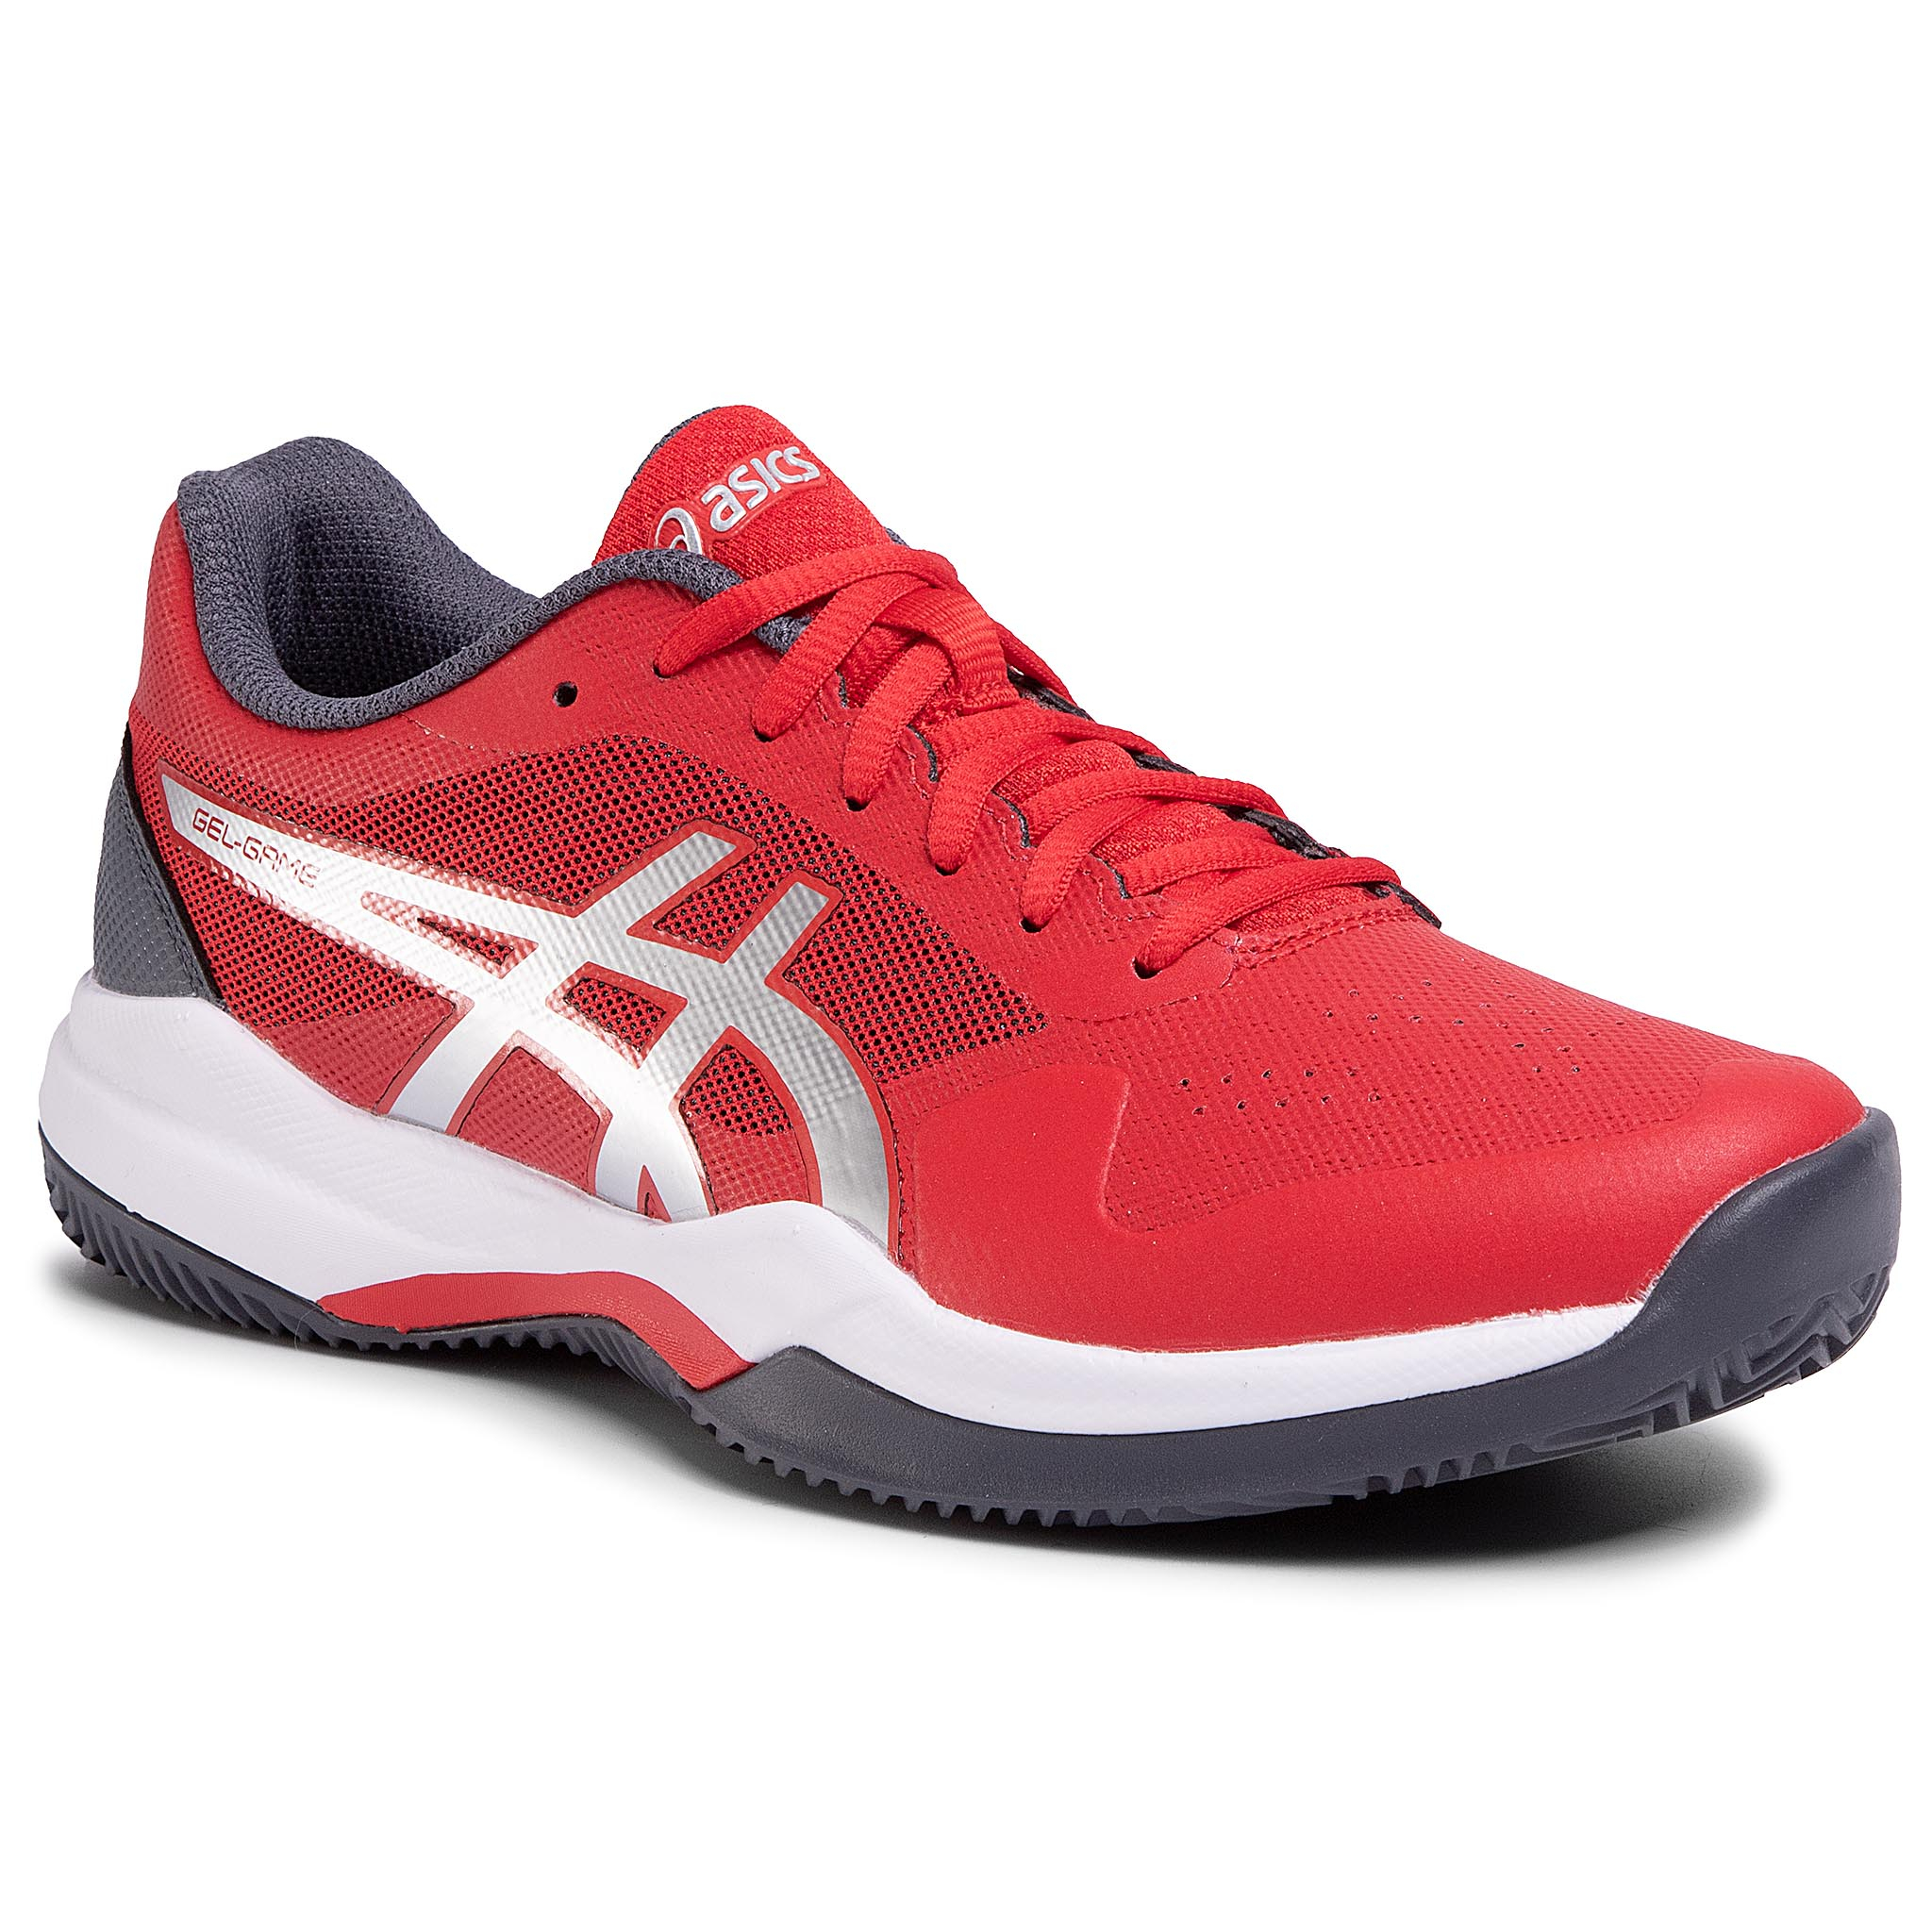 Pantofi Asics - Gel-Game 7 Clay/Oc 1041a046 Classic Red/Pure Silver 603 imagine epantofi.ro 2021